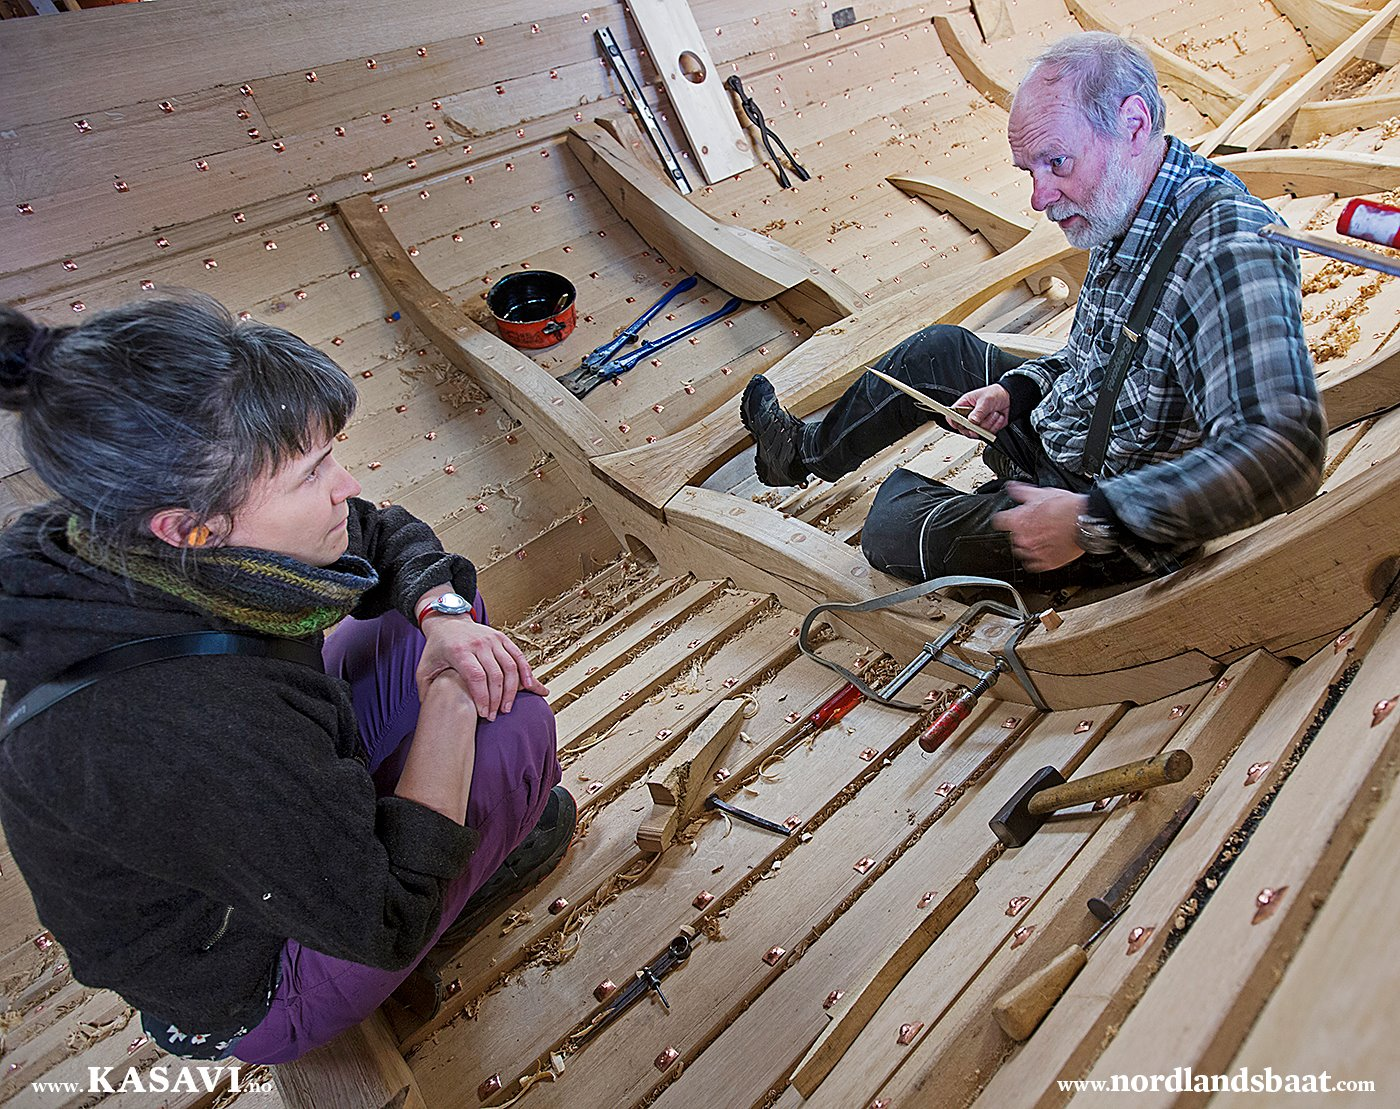 Gunnar explaining how to install the frame. Photo by Arne-Terje Sæther.